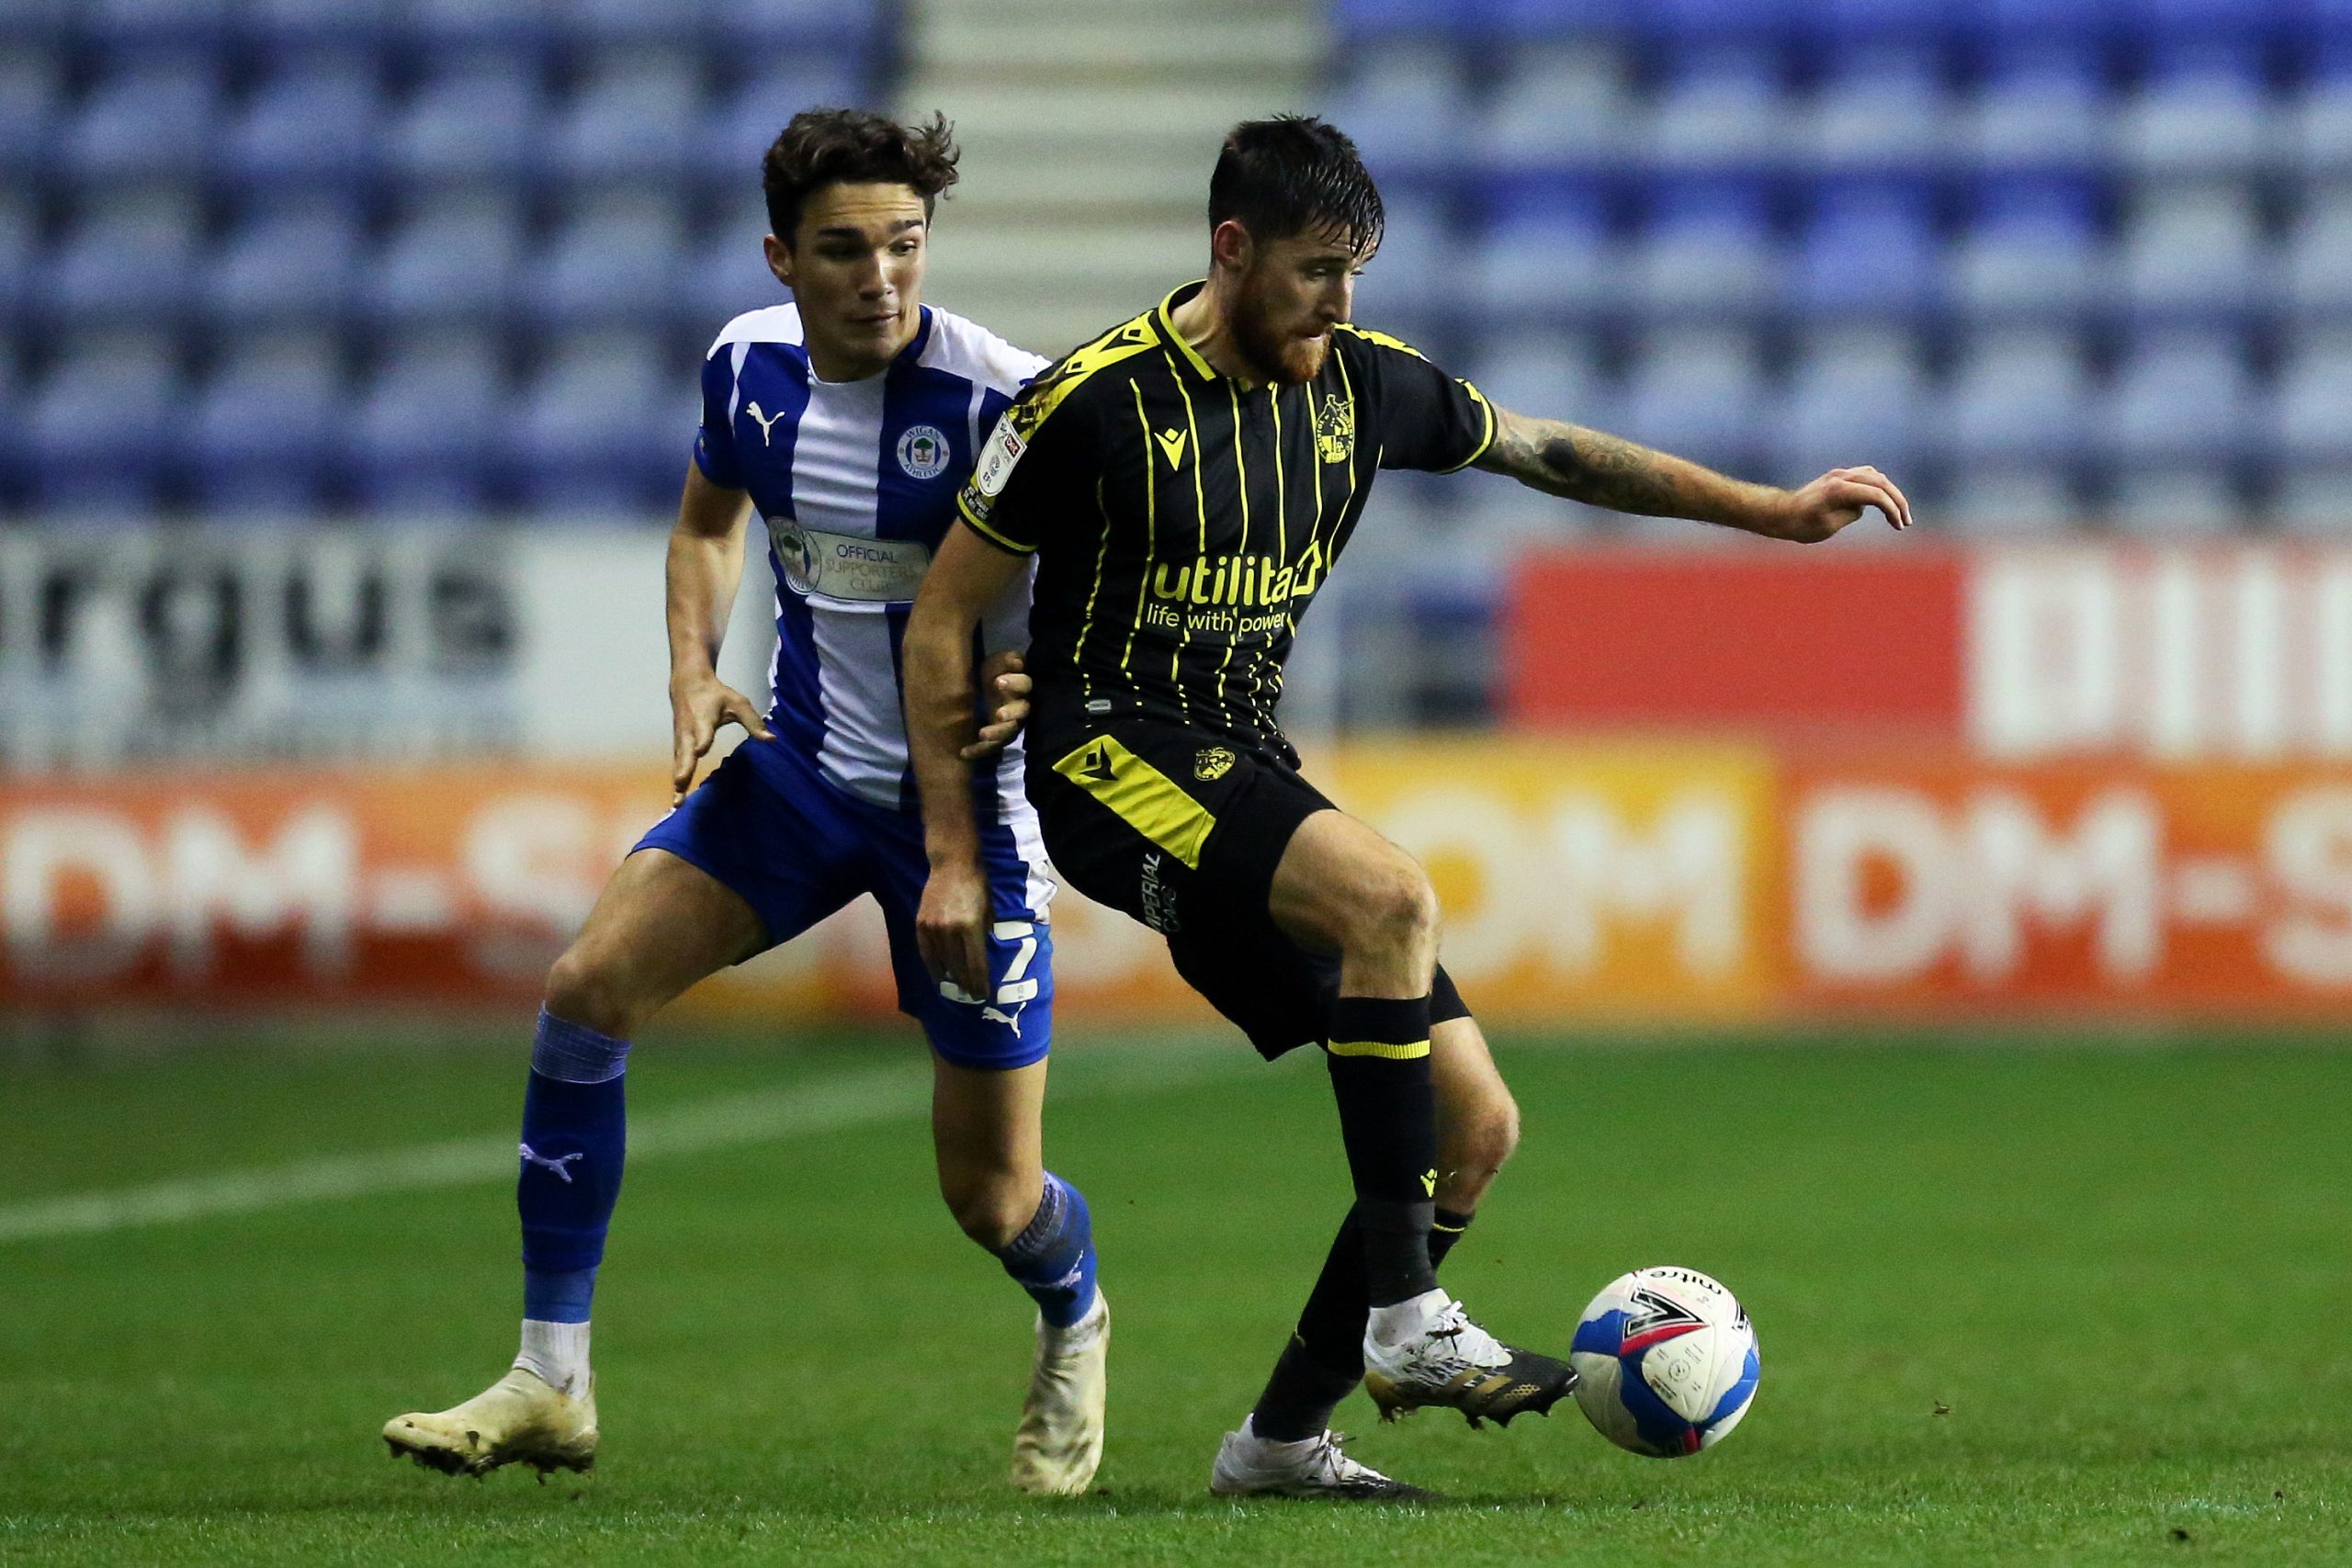 Kyle Joseph (L) plays for Wigan Athletic in League One. (GETTY Images)